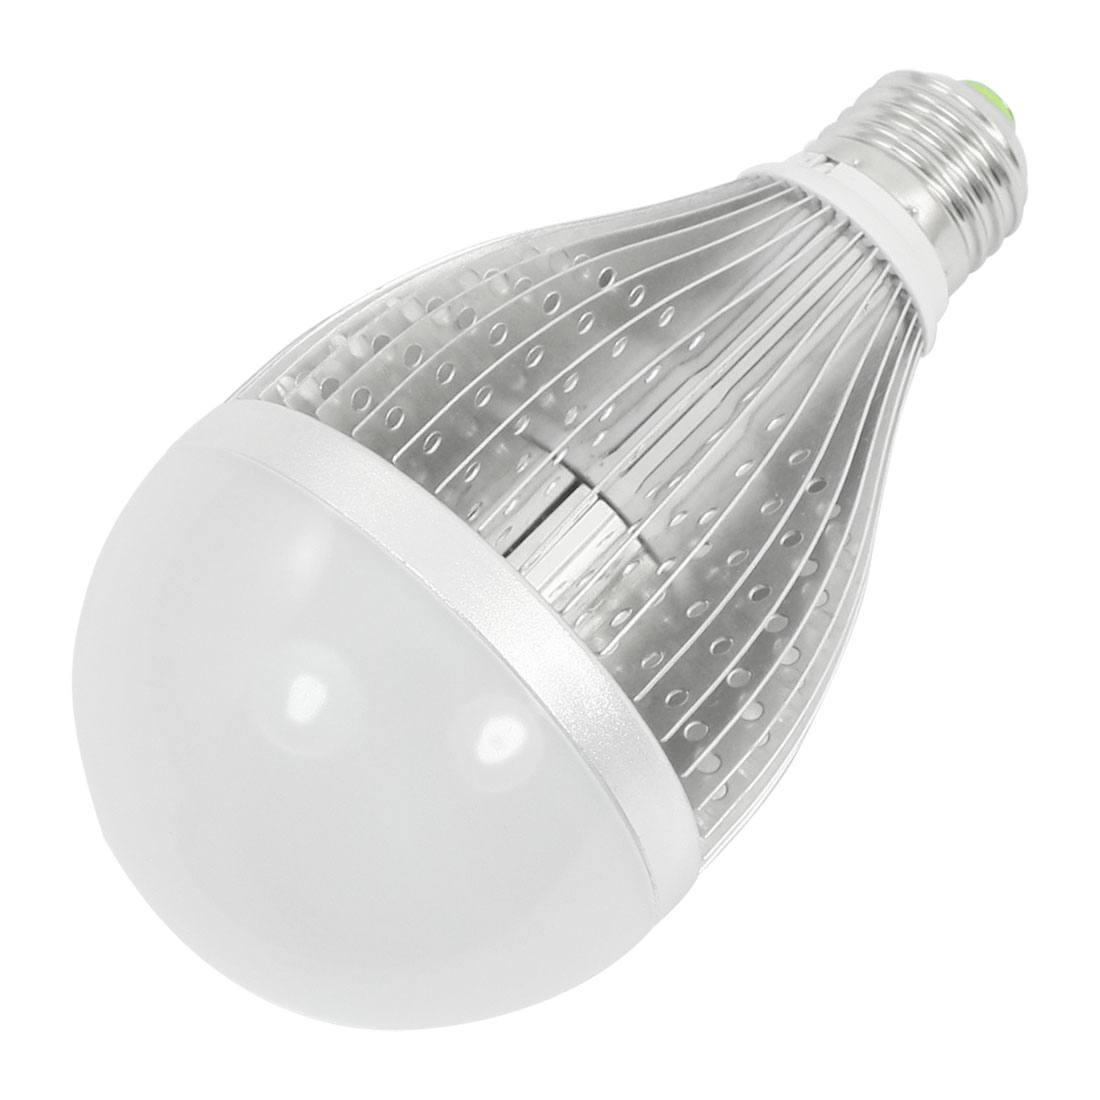 Household Indoor E27 10 x 1W LEDs 1000Lm 3000-3500K Warm White Globe Ball Light Bulb Lamp AC 85-260V